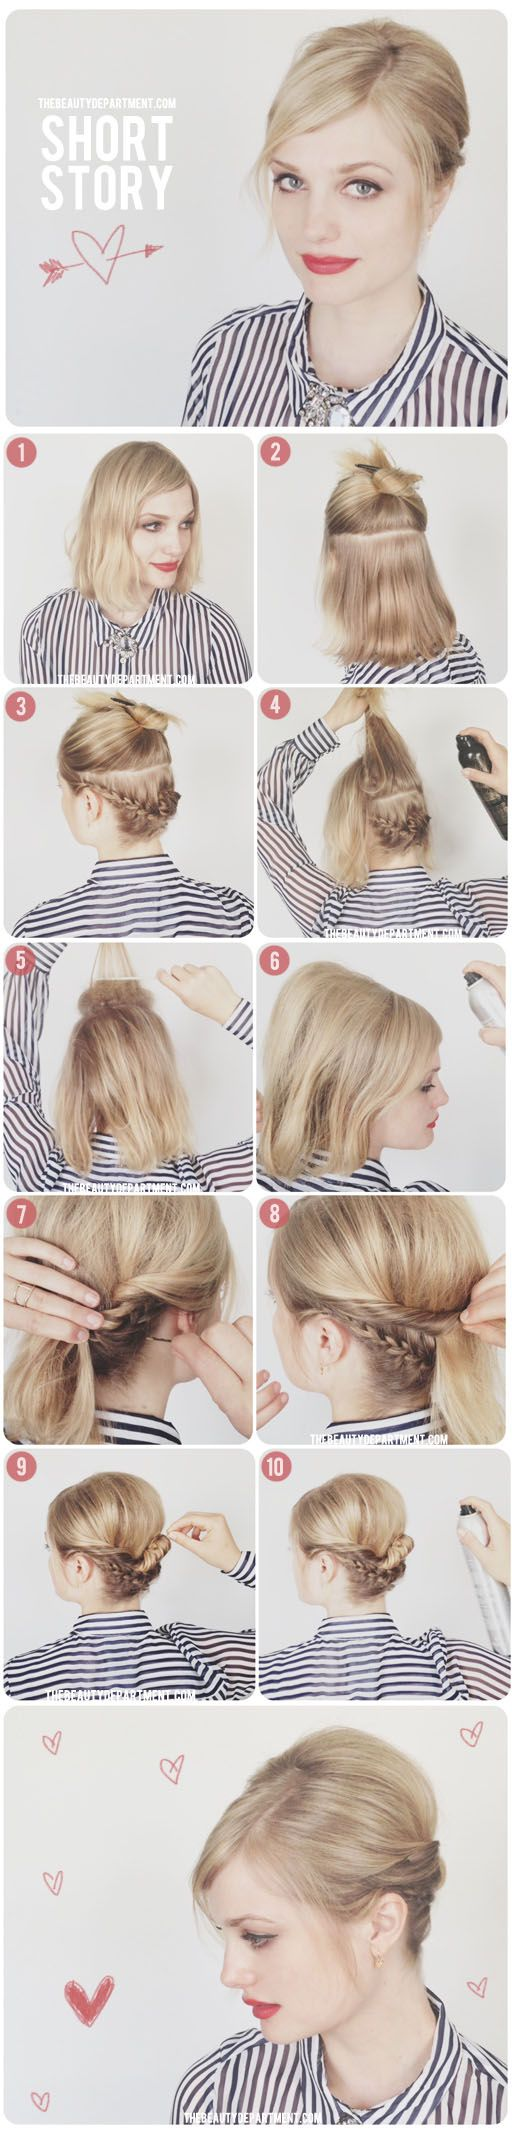 5.French Braid Updo 16 Easy DIY Tutorials For Glamorous and Cute Hairstyle